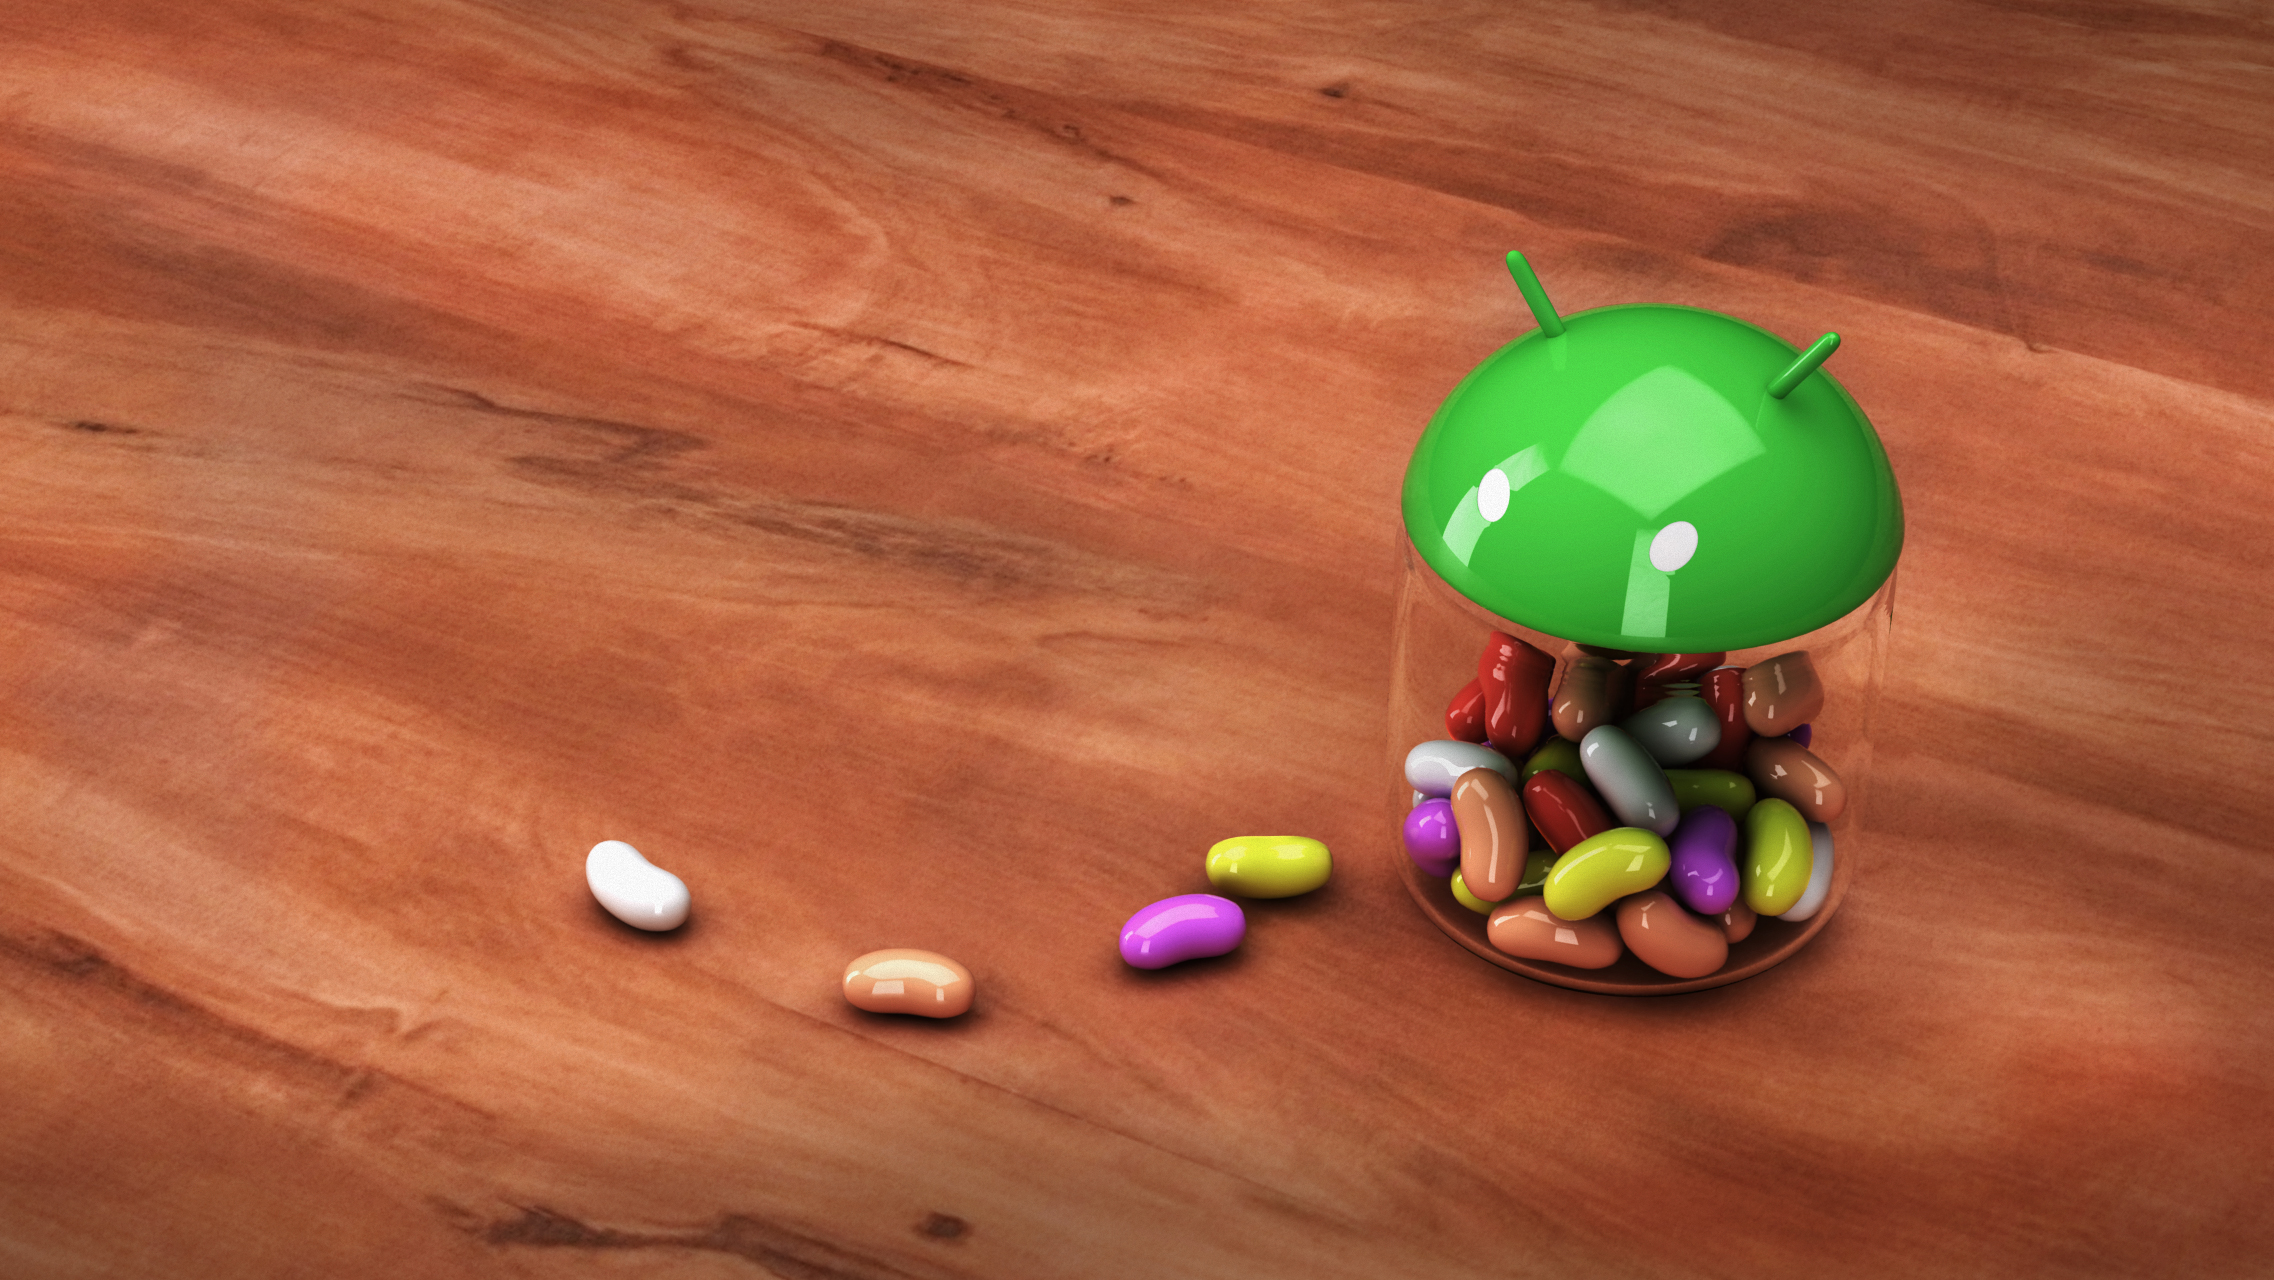 [47+] Android Jelly Bean Wallpaper on WallpaperSafari